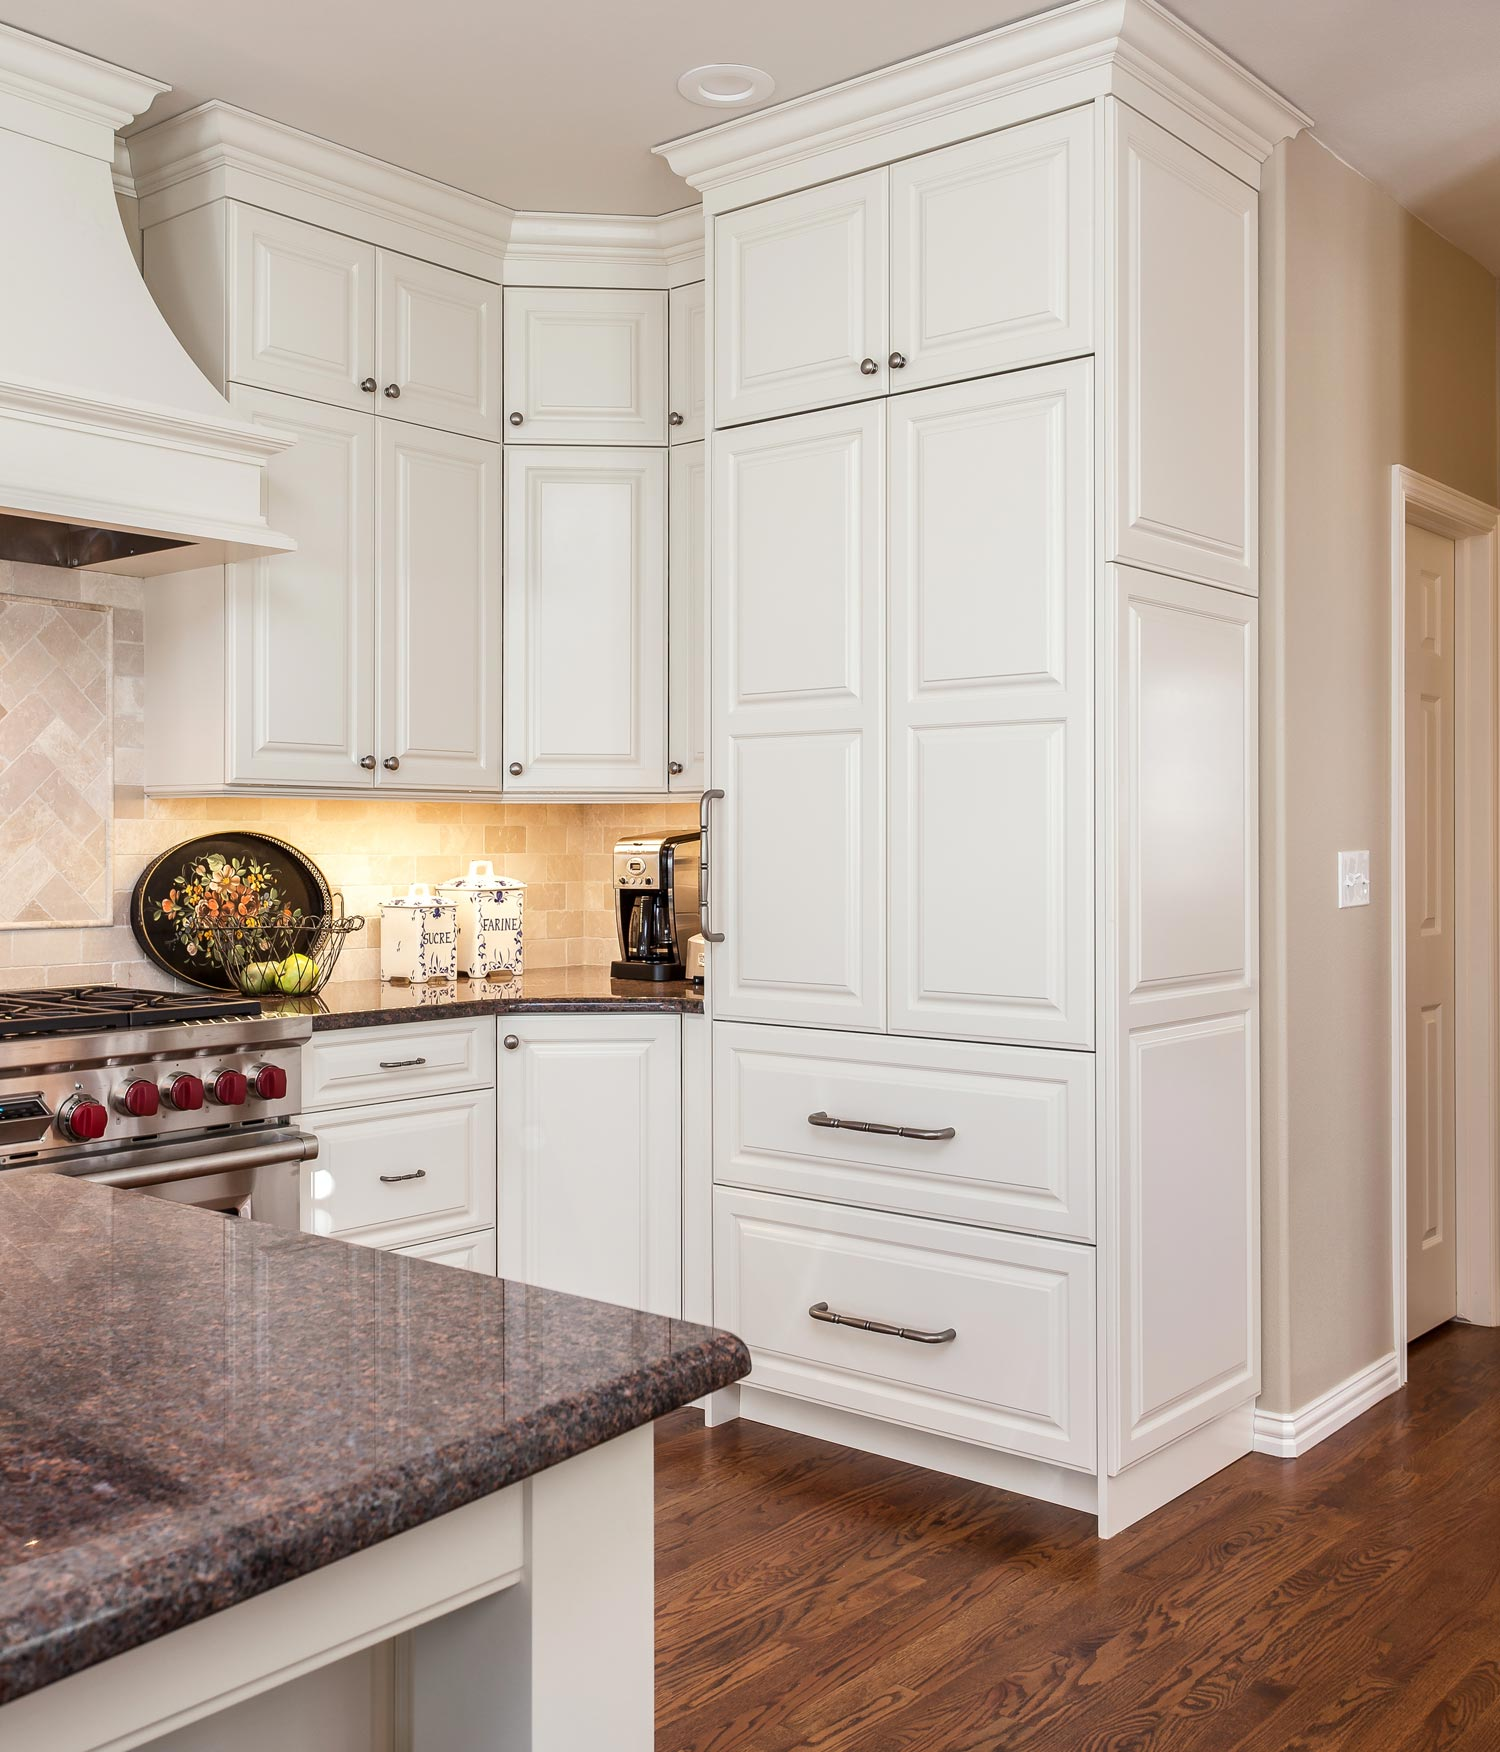 Outstanding Floor to Ceiling Kitchen Cabinets Pictures Design Ideas ...